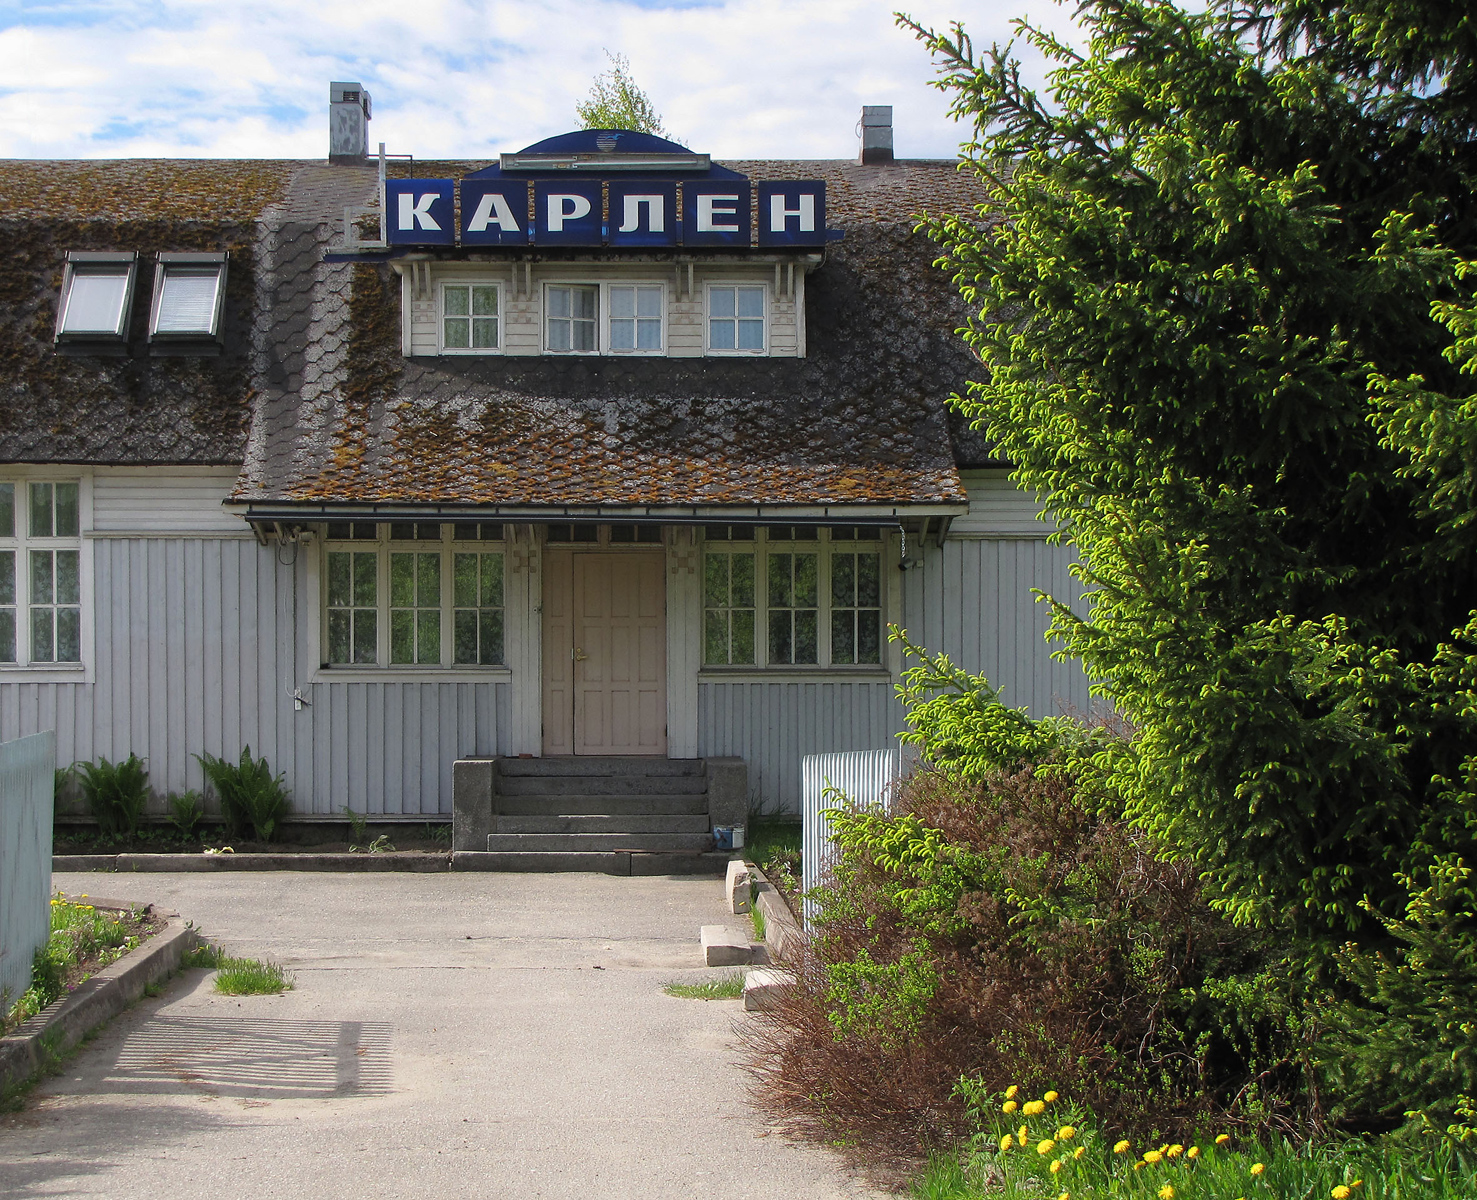 June 11, 2017. The Hotel Karlen (former railway station)